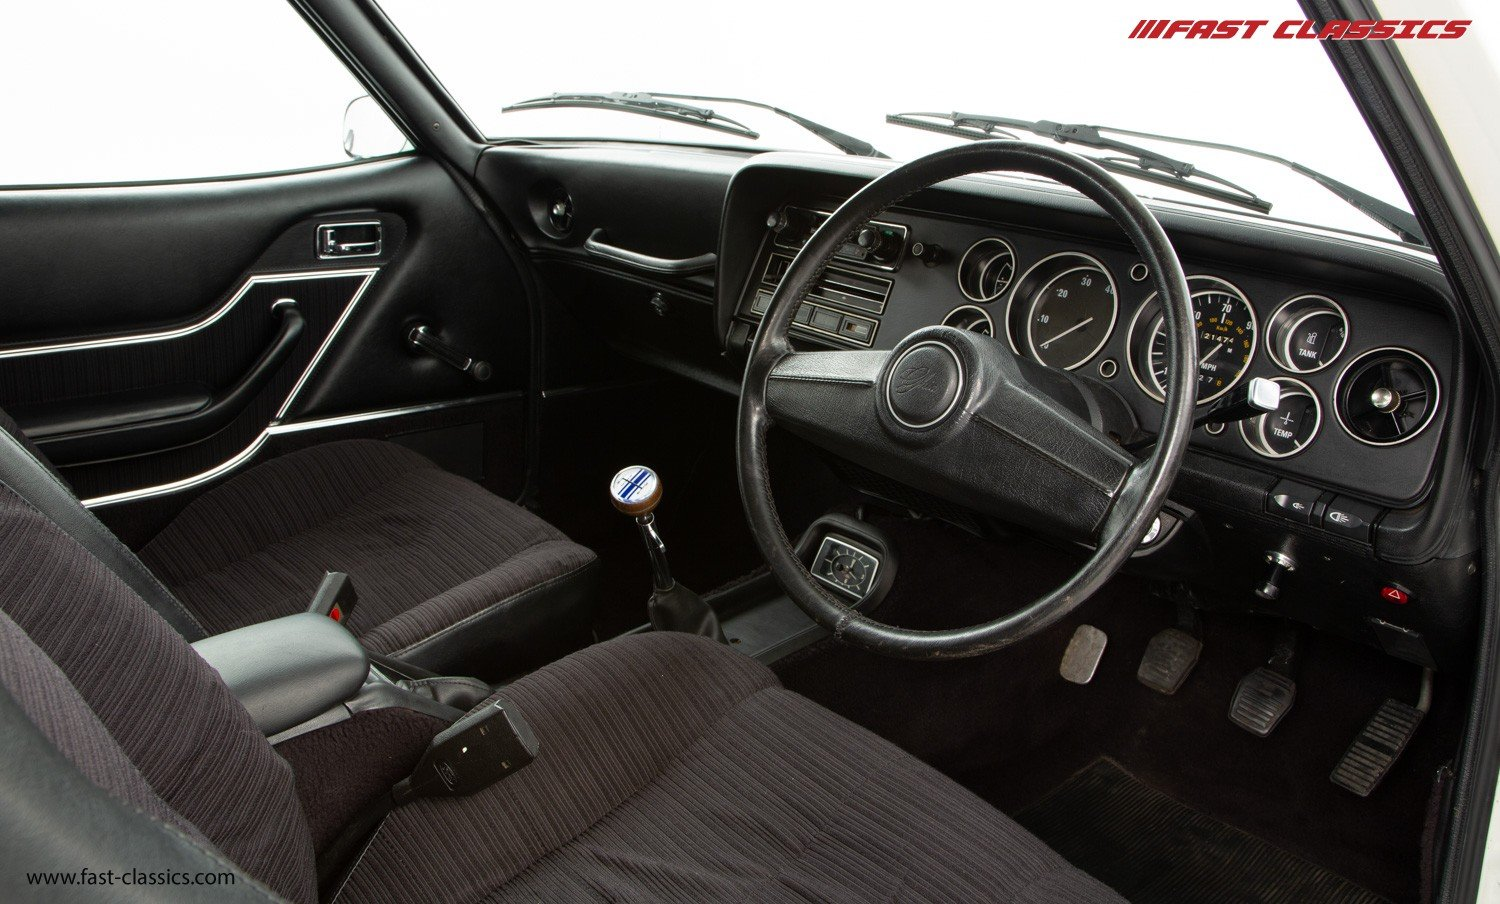 1974 FORD CAPRI STAMPEDE // 1 OF 1 // BOSS 302 V8 ENGINE For Sale (picture 4 of 6)